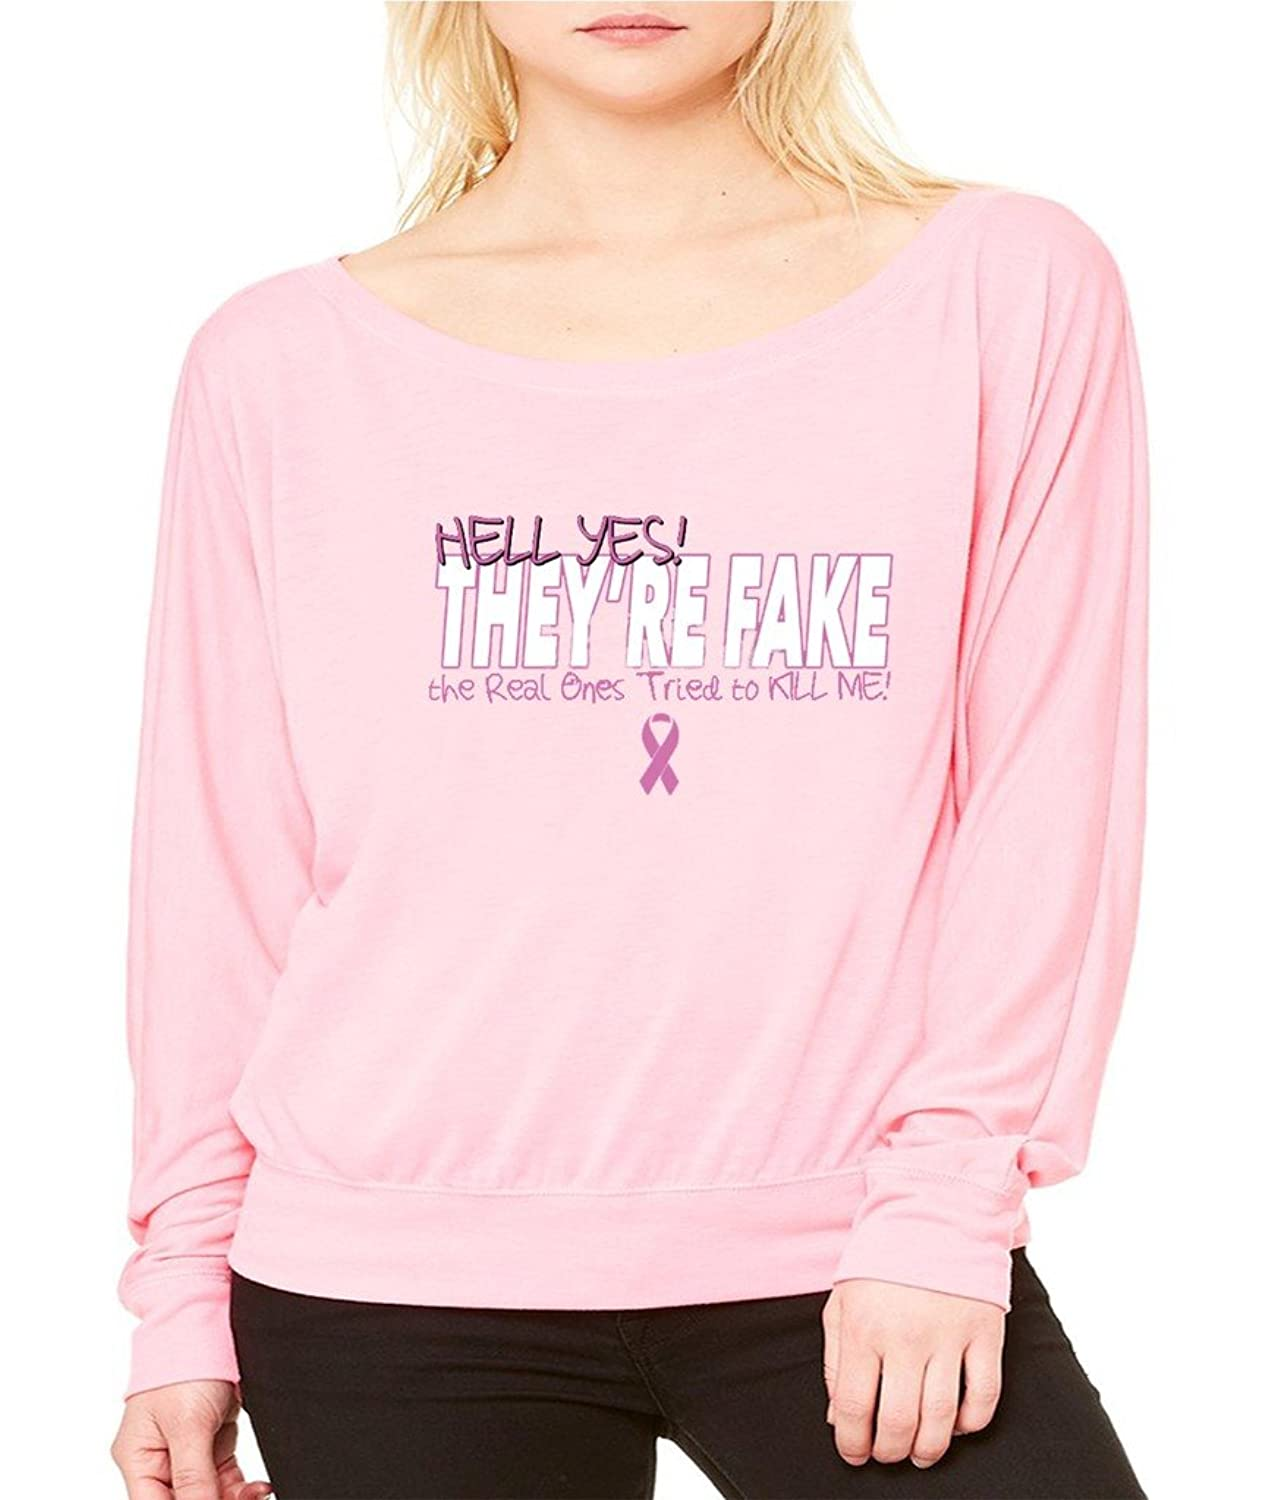 They are Fake Real Tried to Kill Me T-shirt Breast Cancer Awareness Shirts